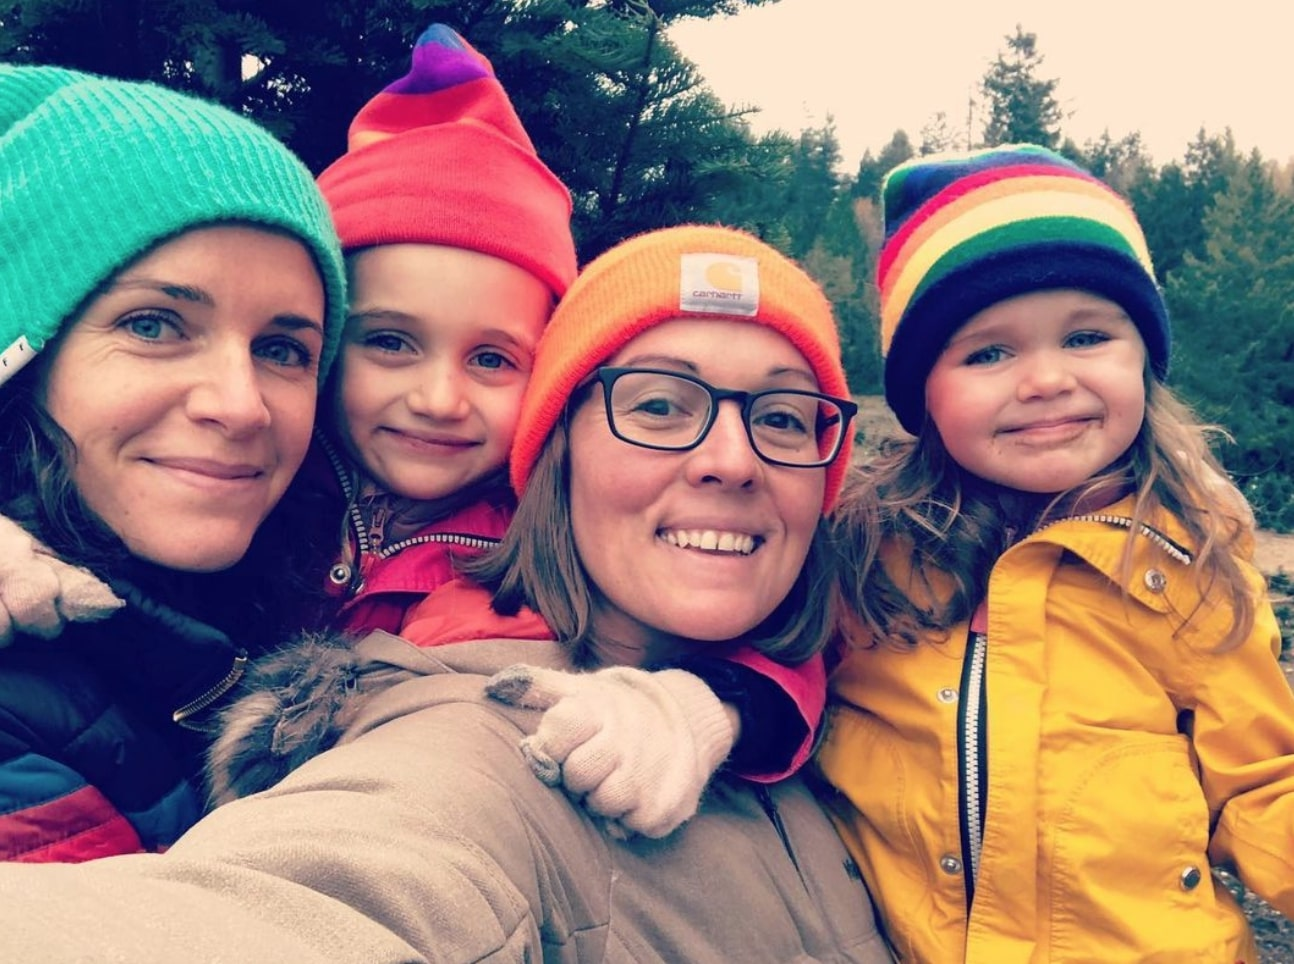 brandi carlile on queer parenting with wife catherine